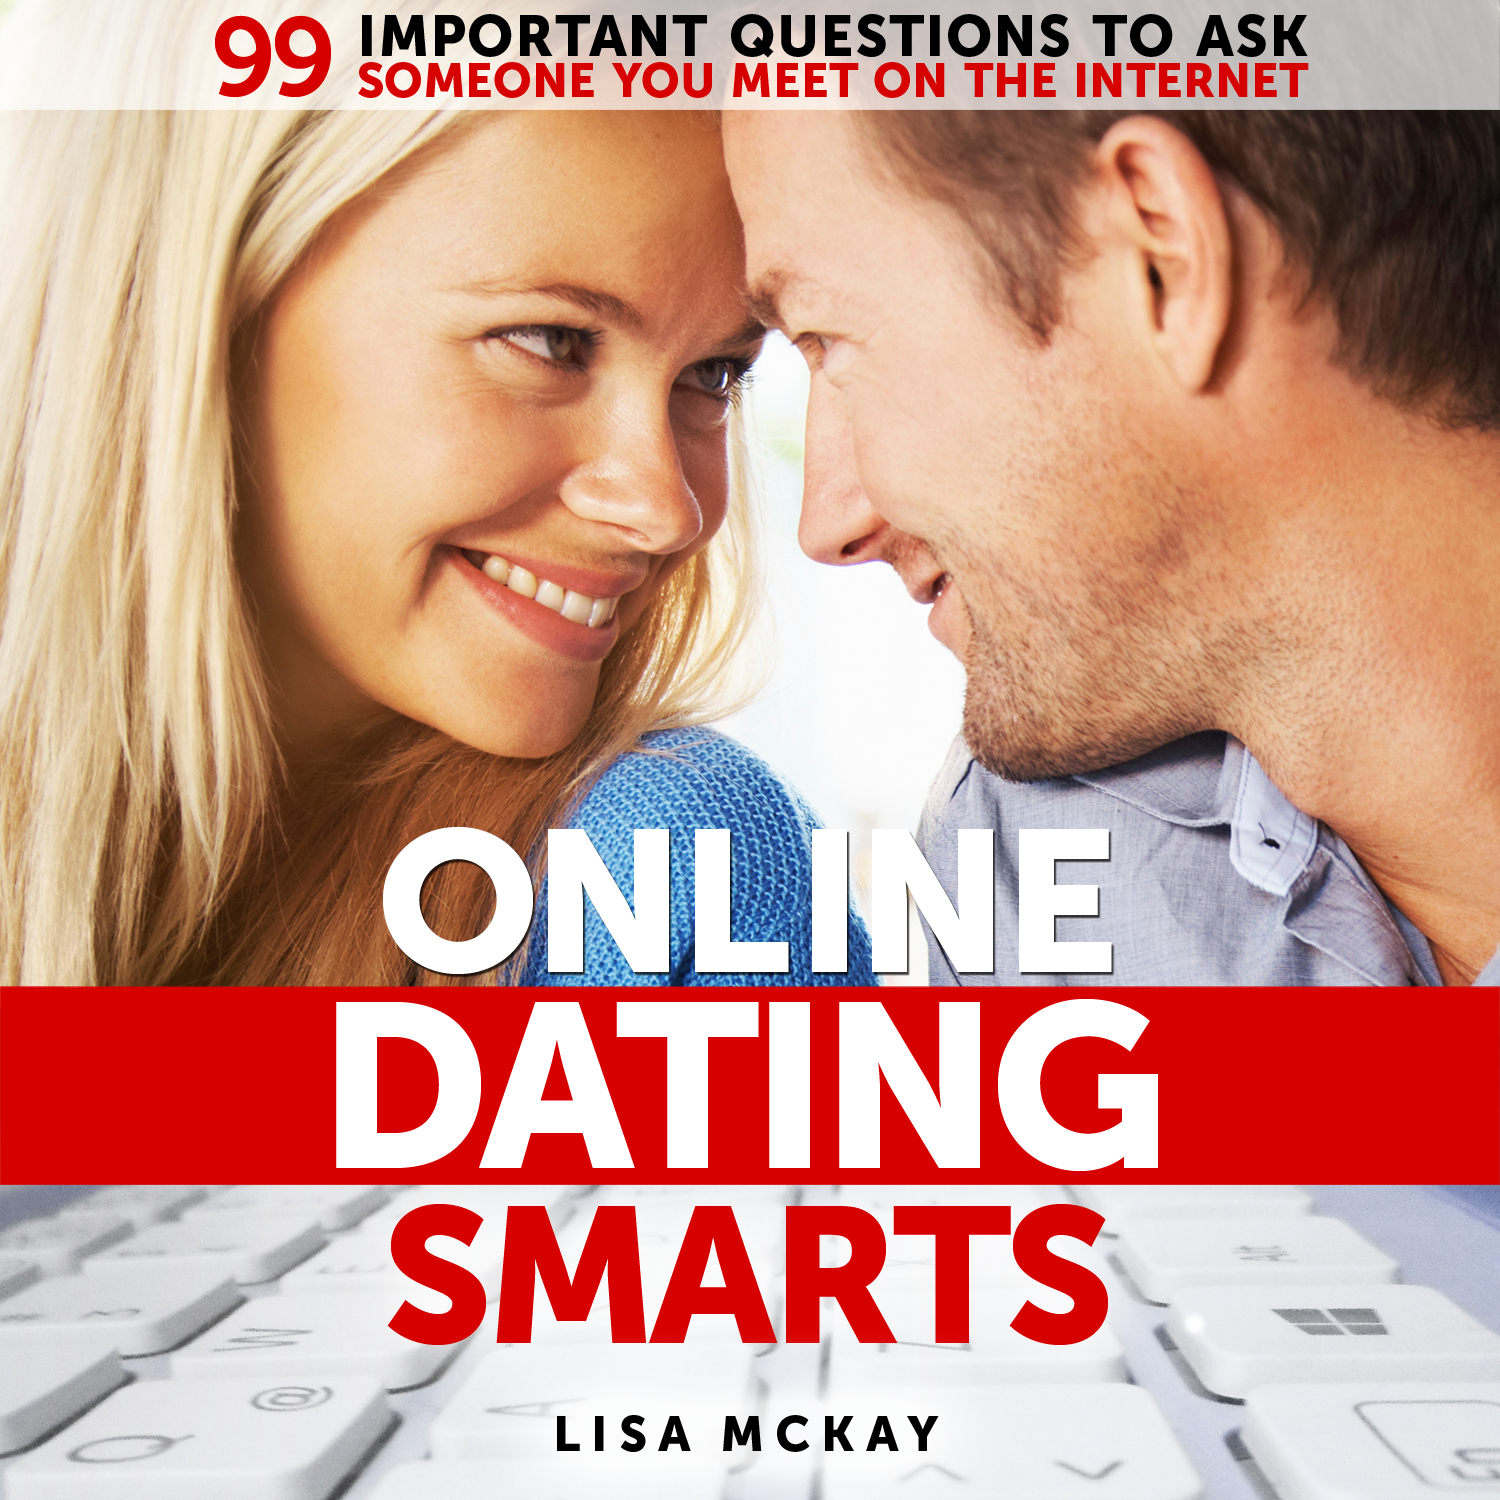 10 important dating questions 10 important questions to ask on a first date first dates are not just great for flirting and having fun it's also a good chance to get to know each other and even decide if you want to continue relationships with this person or not.